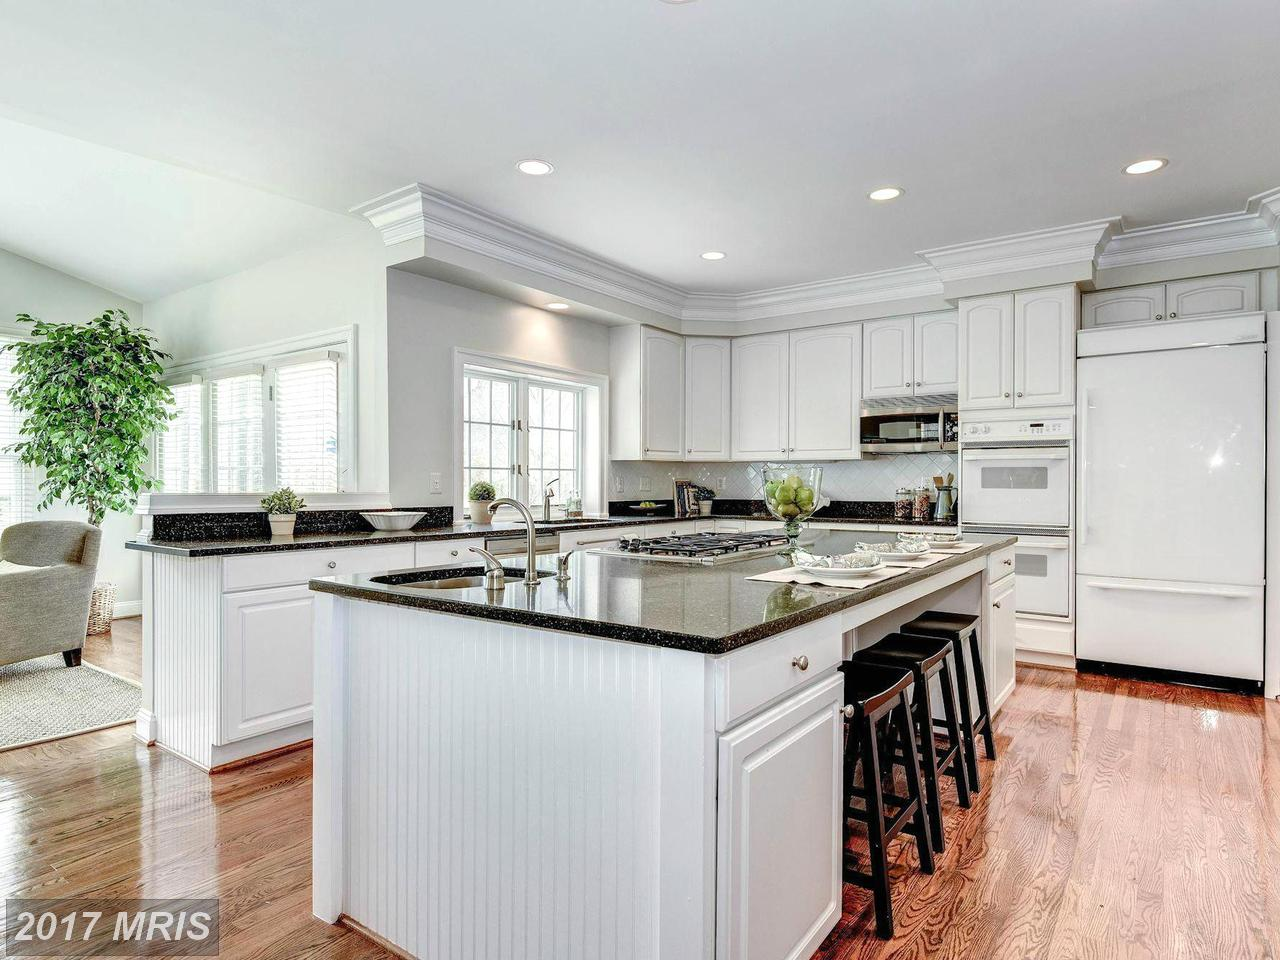 Additional photo for property listing at Colonial, Detached - MCLEAN, VA 1423 MAYHURST BLVD 麦克林, 弗吉尼亚州,22102 美国